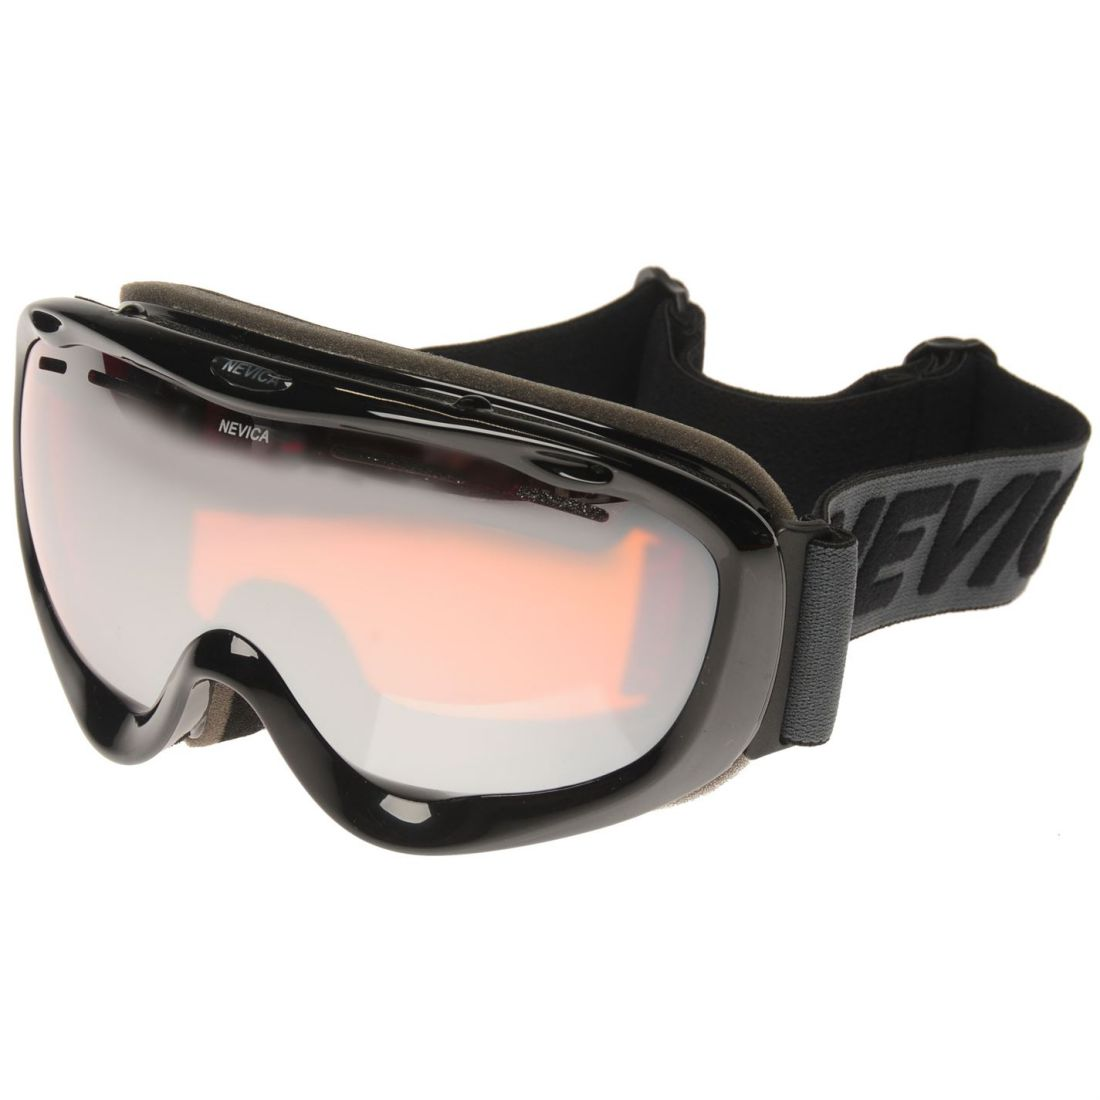 f79921d33bd Details about Nevica Vail Ski Goggles Mens Gents Headstrap